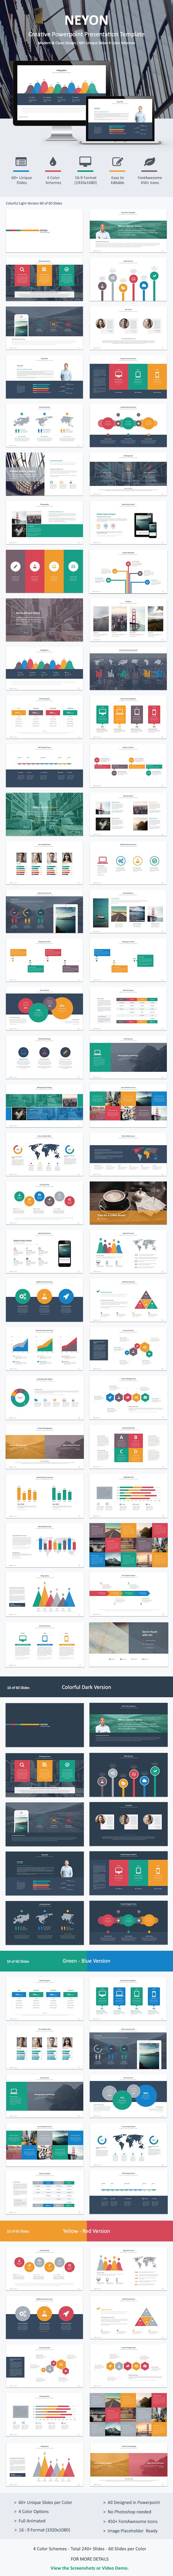 Neyon - Powerpoint Template (Powerpoint Templates)                                                                                                                                                                                 More